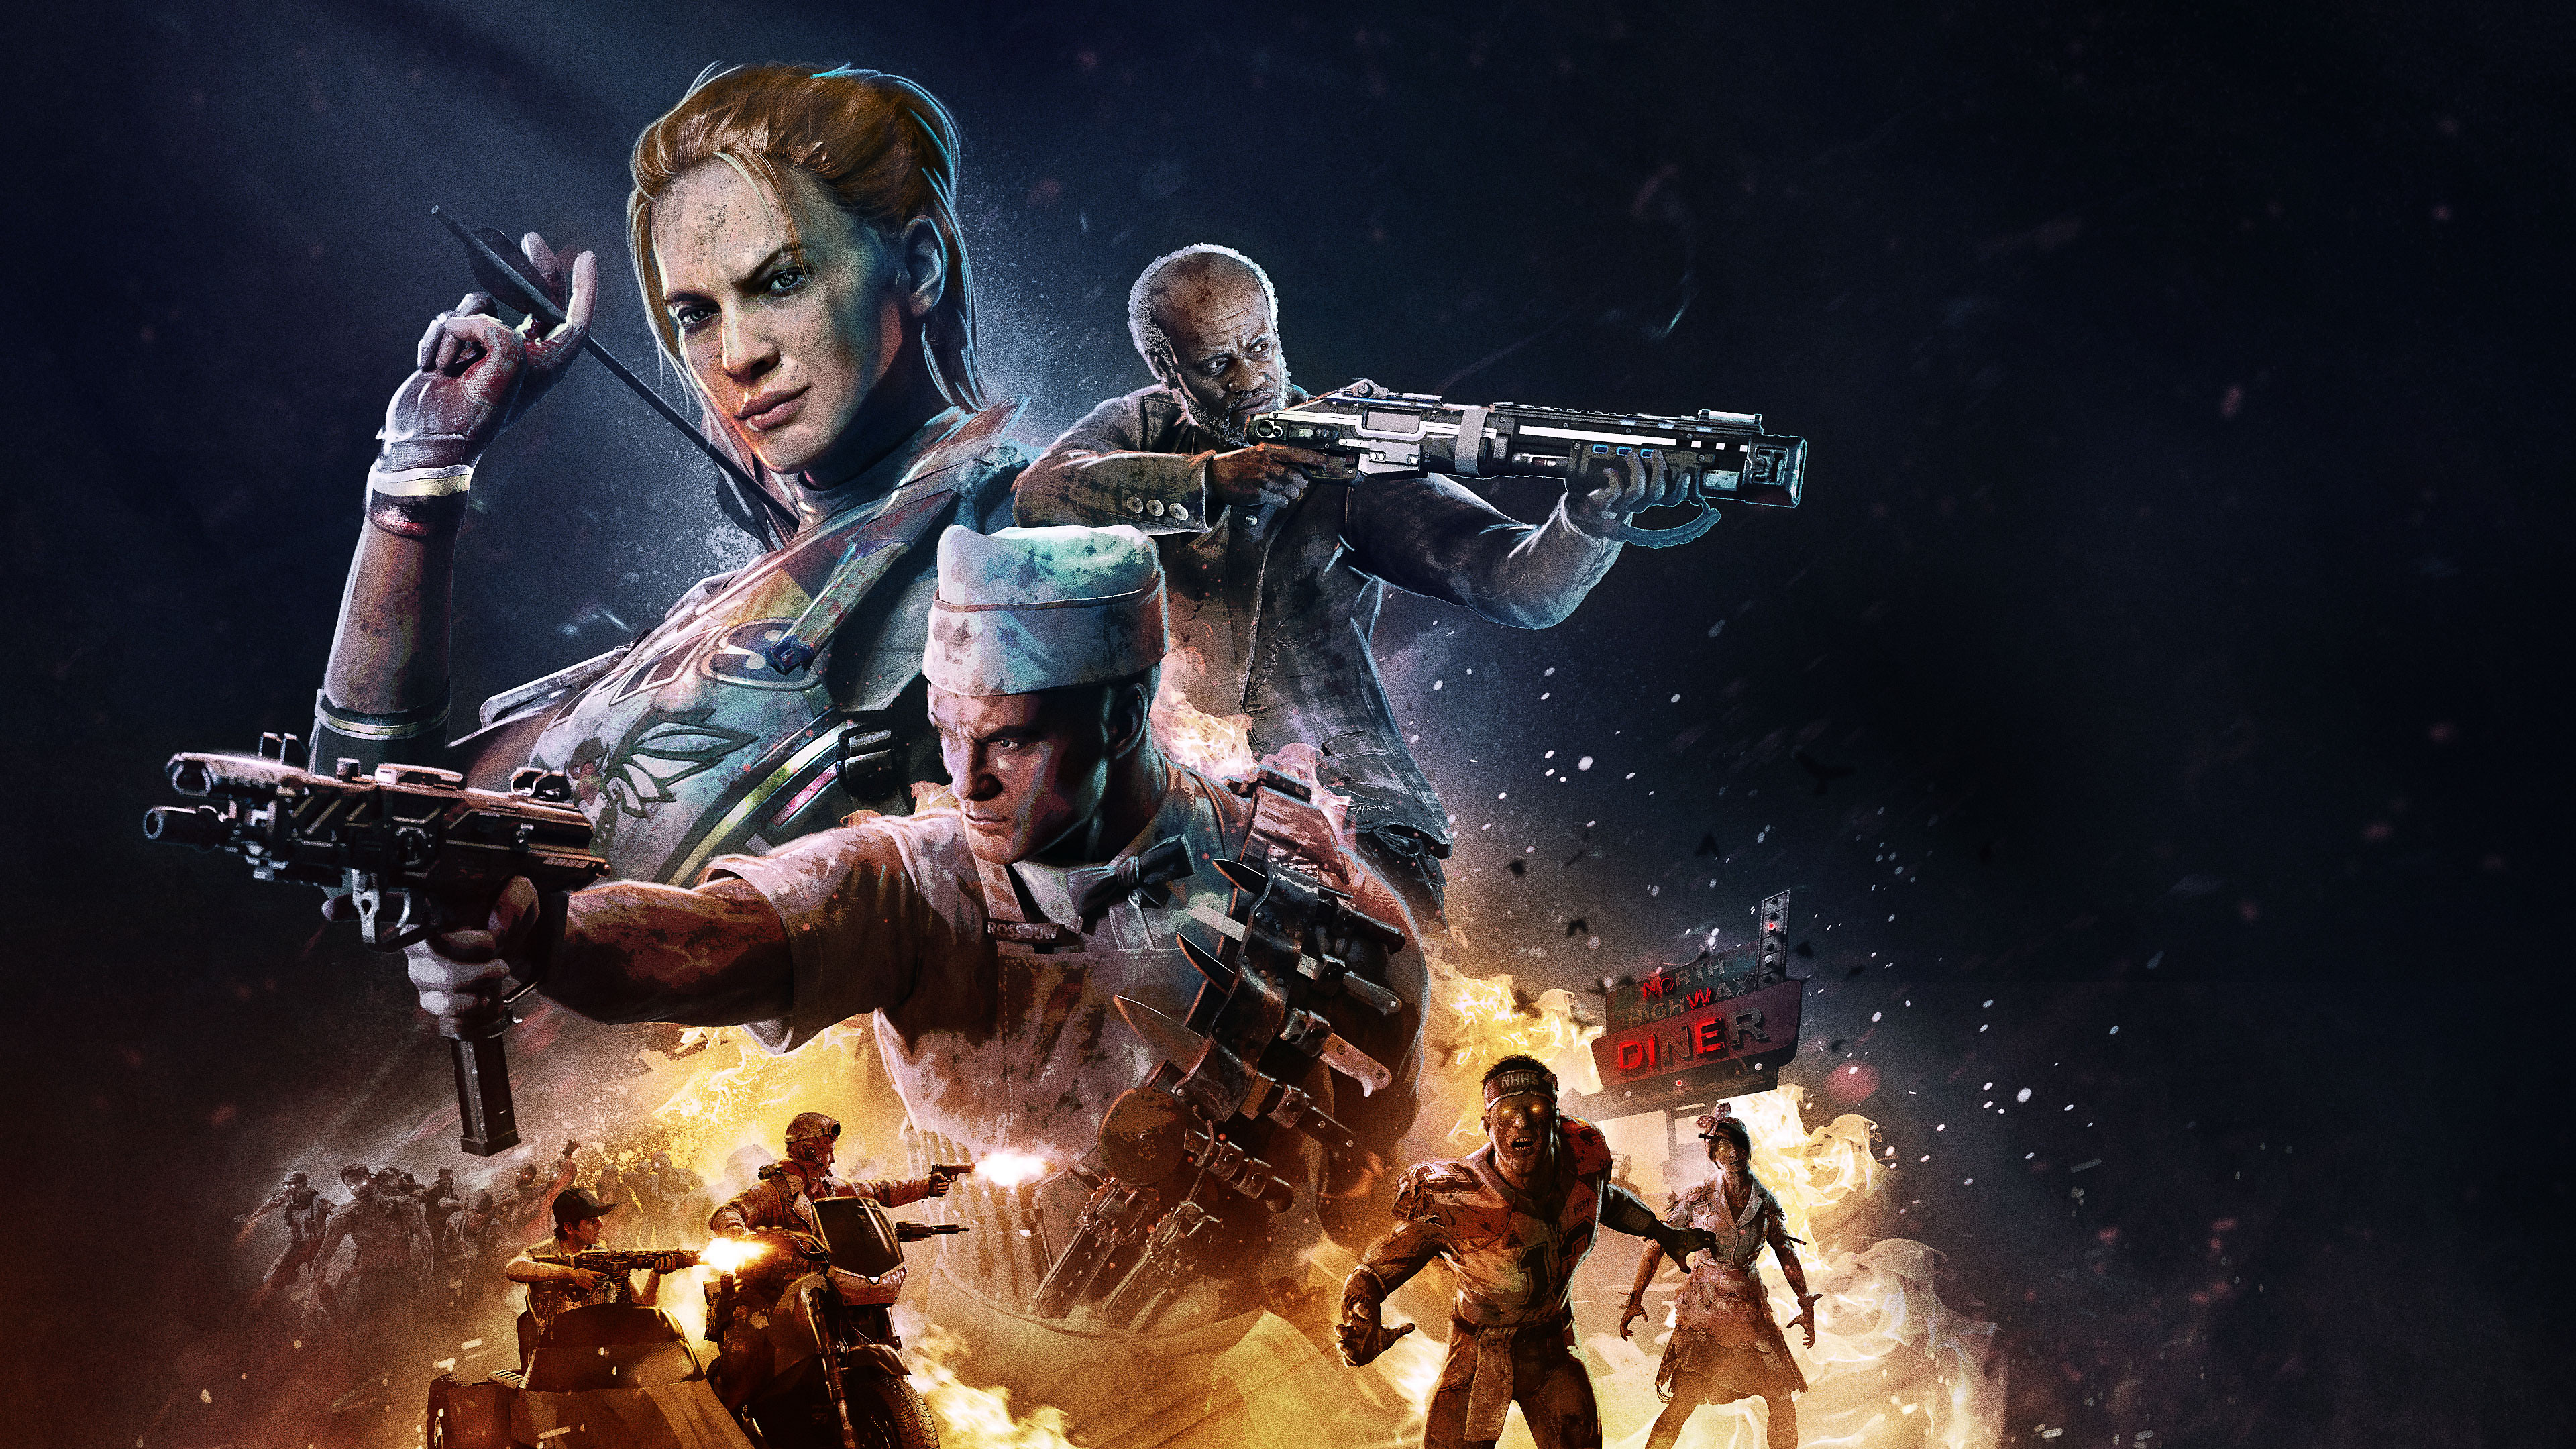 call of duty black ops 4 operation apocalypse z key art 1565054548 - Call Of Duty Black Ops 4 Operation Apocalypse Z Key Art - xbox games wallpapers, ps games wallpapers, pc games wallpapers, hd-wallpapers, games wallpapers, call of duty wallpapers, call of duty black ops 4 wallpapers, 4k-wallpapers, 2018 games wallpapers